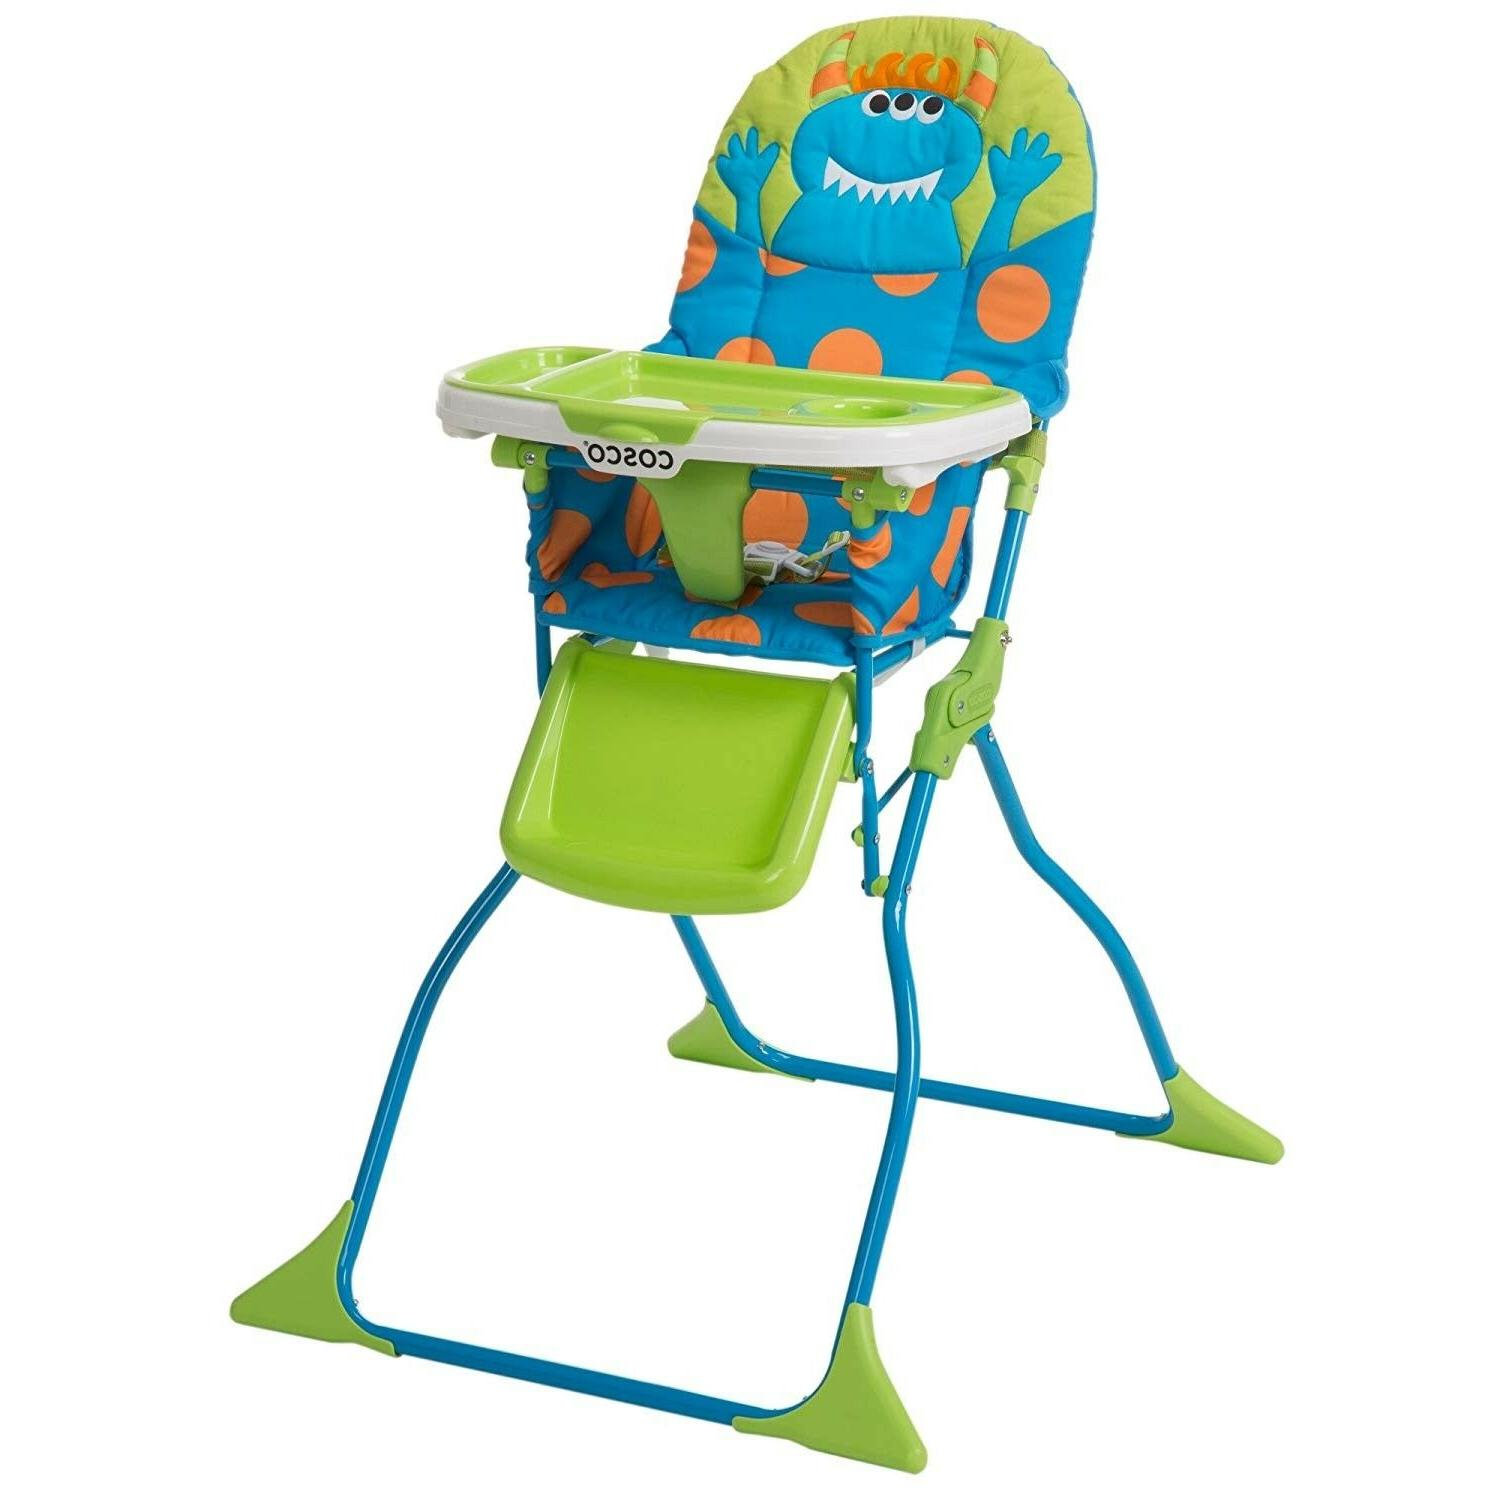 Baby Car Seat Compact Play Yard Deluxe Combo Set